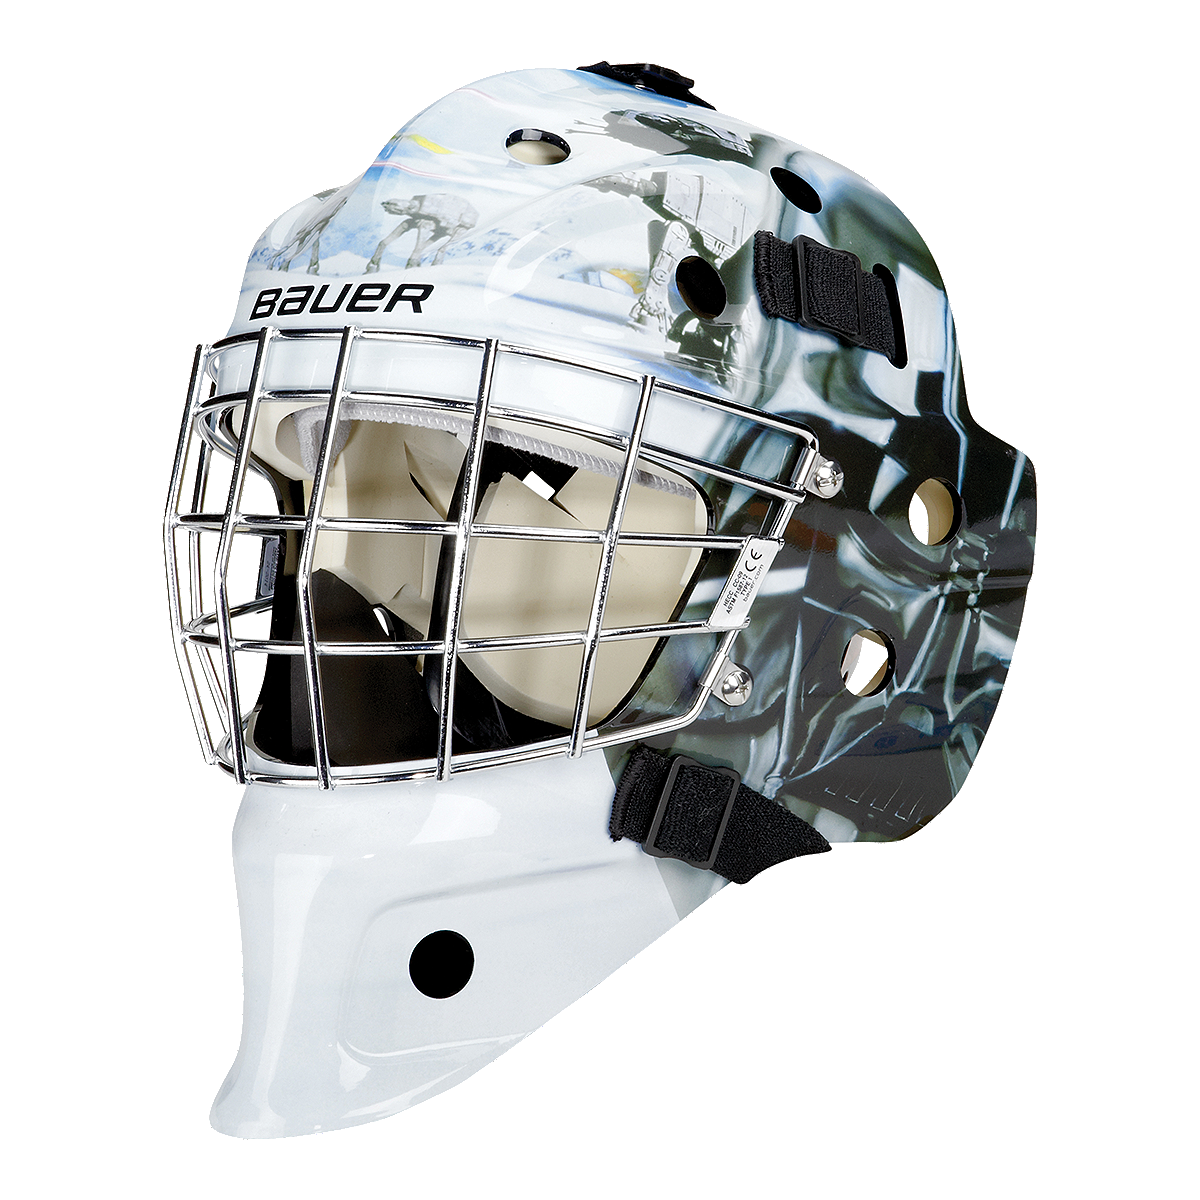 Bauer nme 3 star wars darth vader head youth goalie mask for Bauer goalie mask template